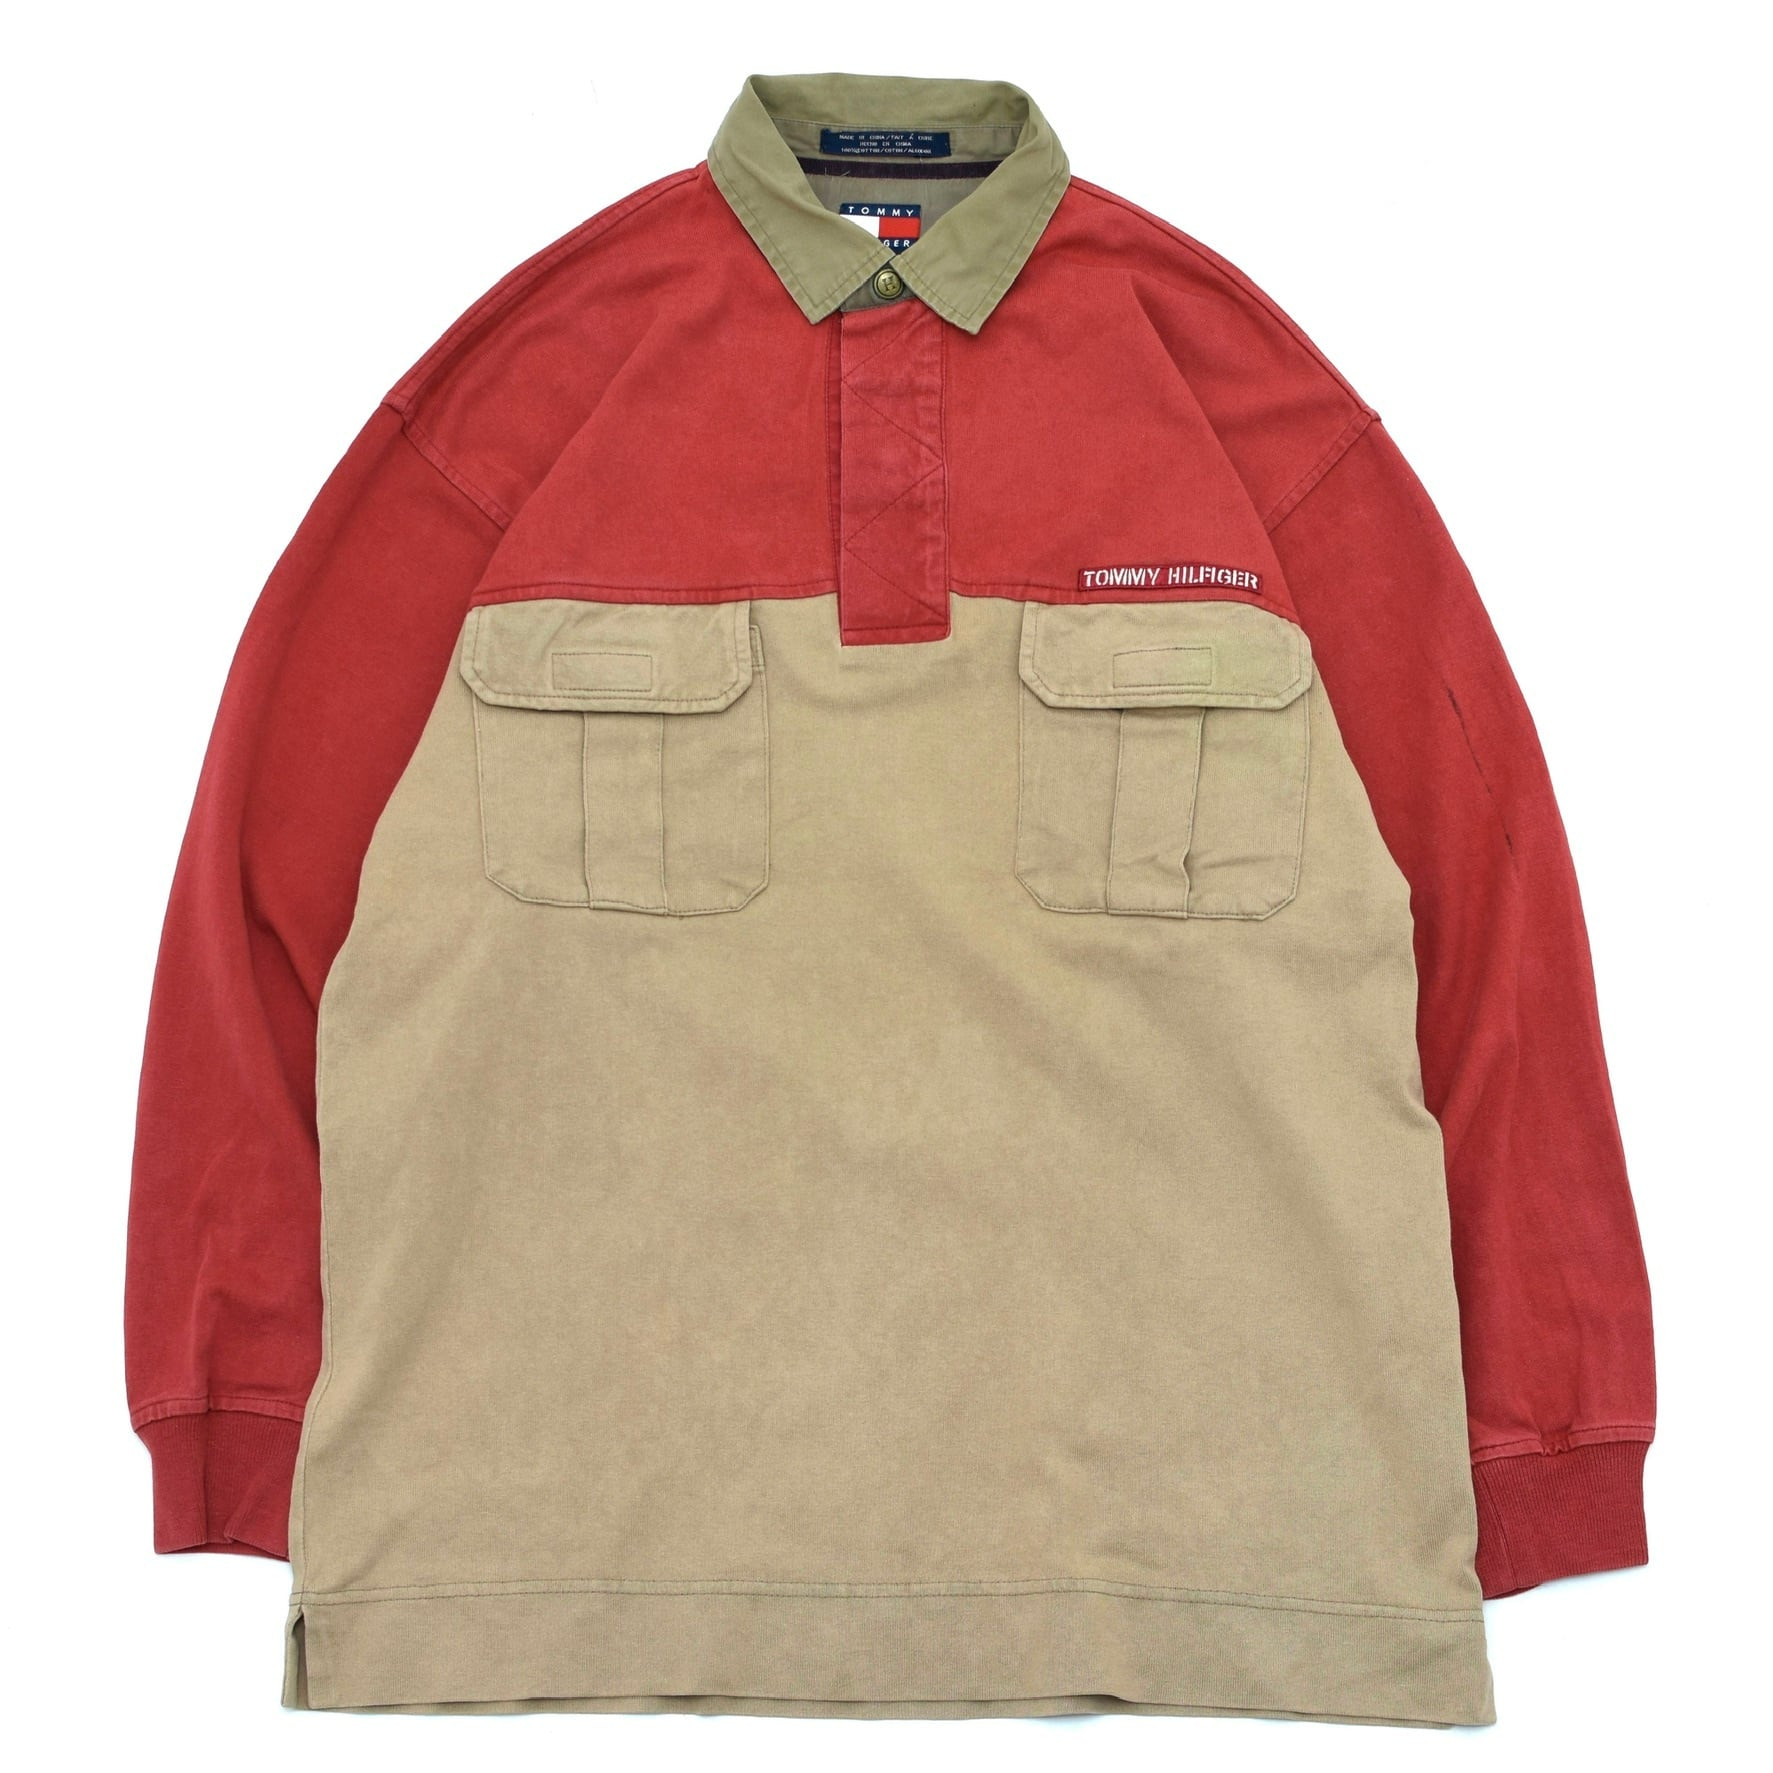 90's OLD TOMMY HILFIGER bicolor polo shirt